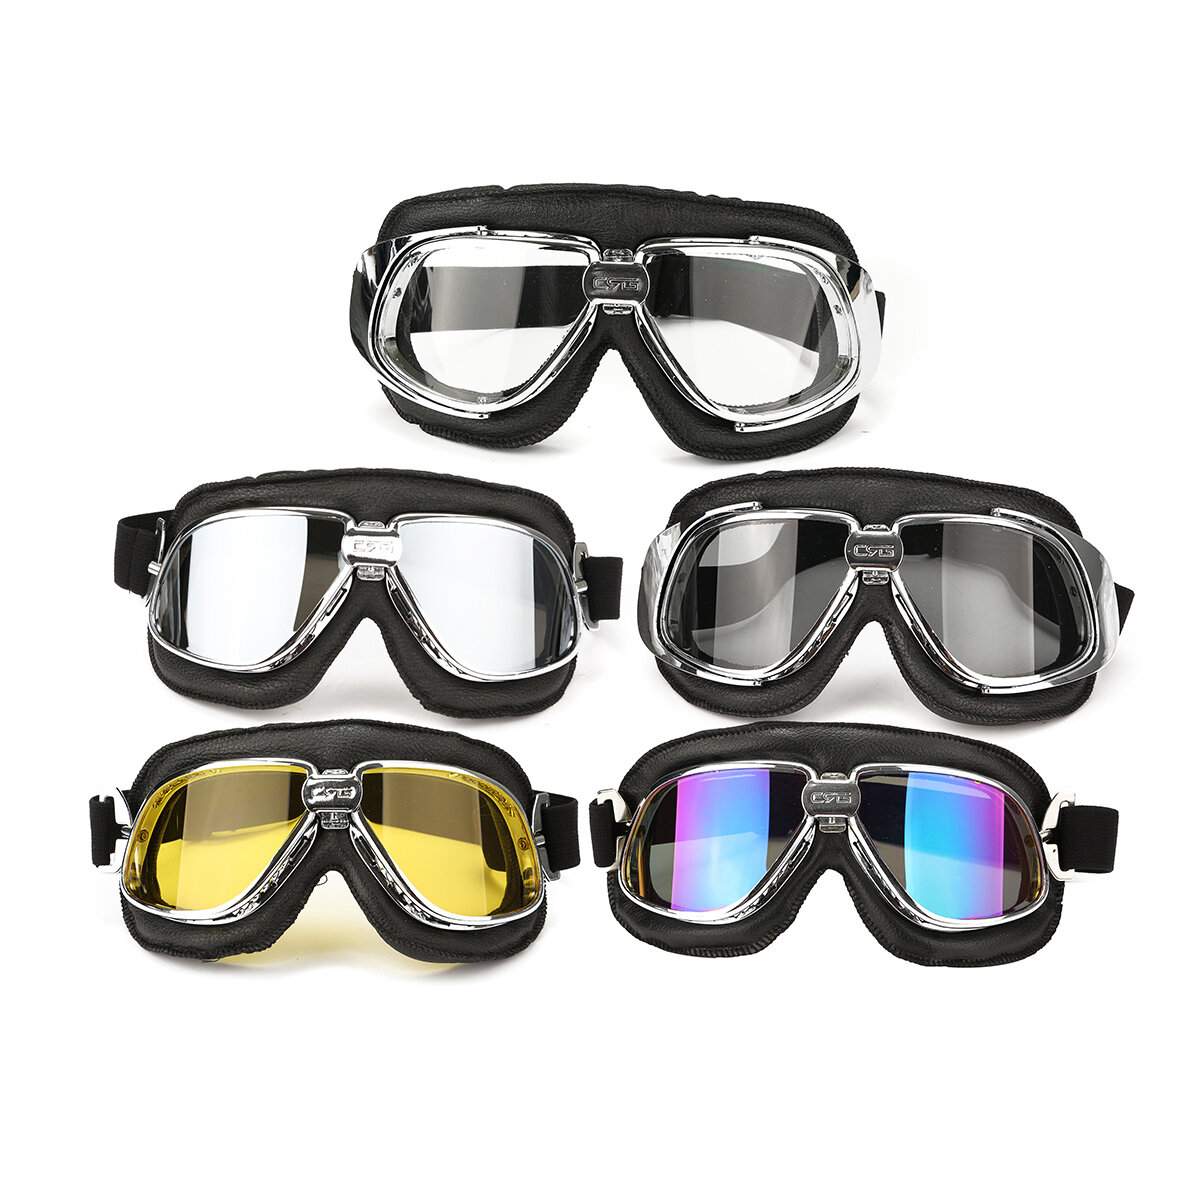 f06ab0ffea3 Motorcycle Goggles Motor Bike Flying Scooter Helmet Glasses Goggle Anti UV  COD